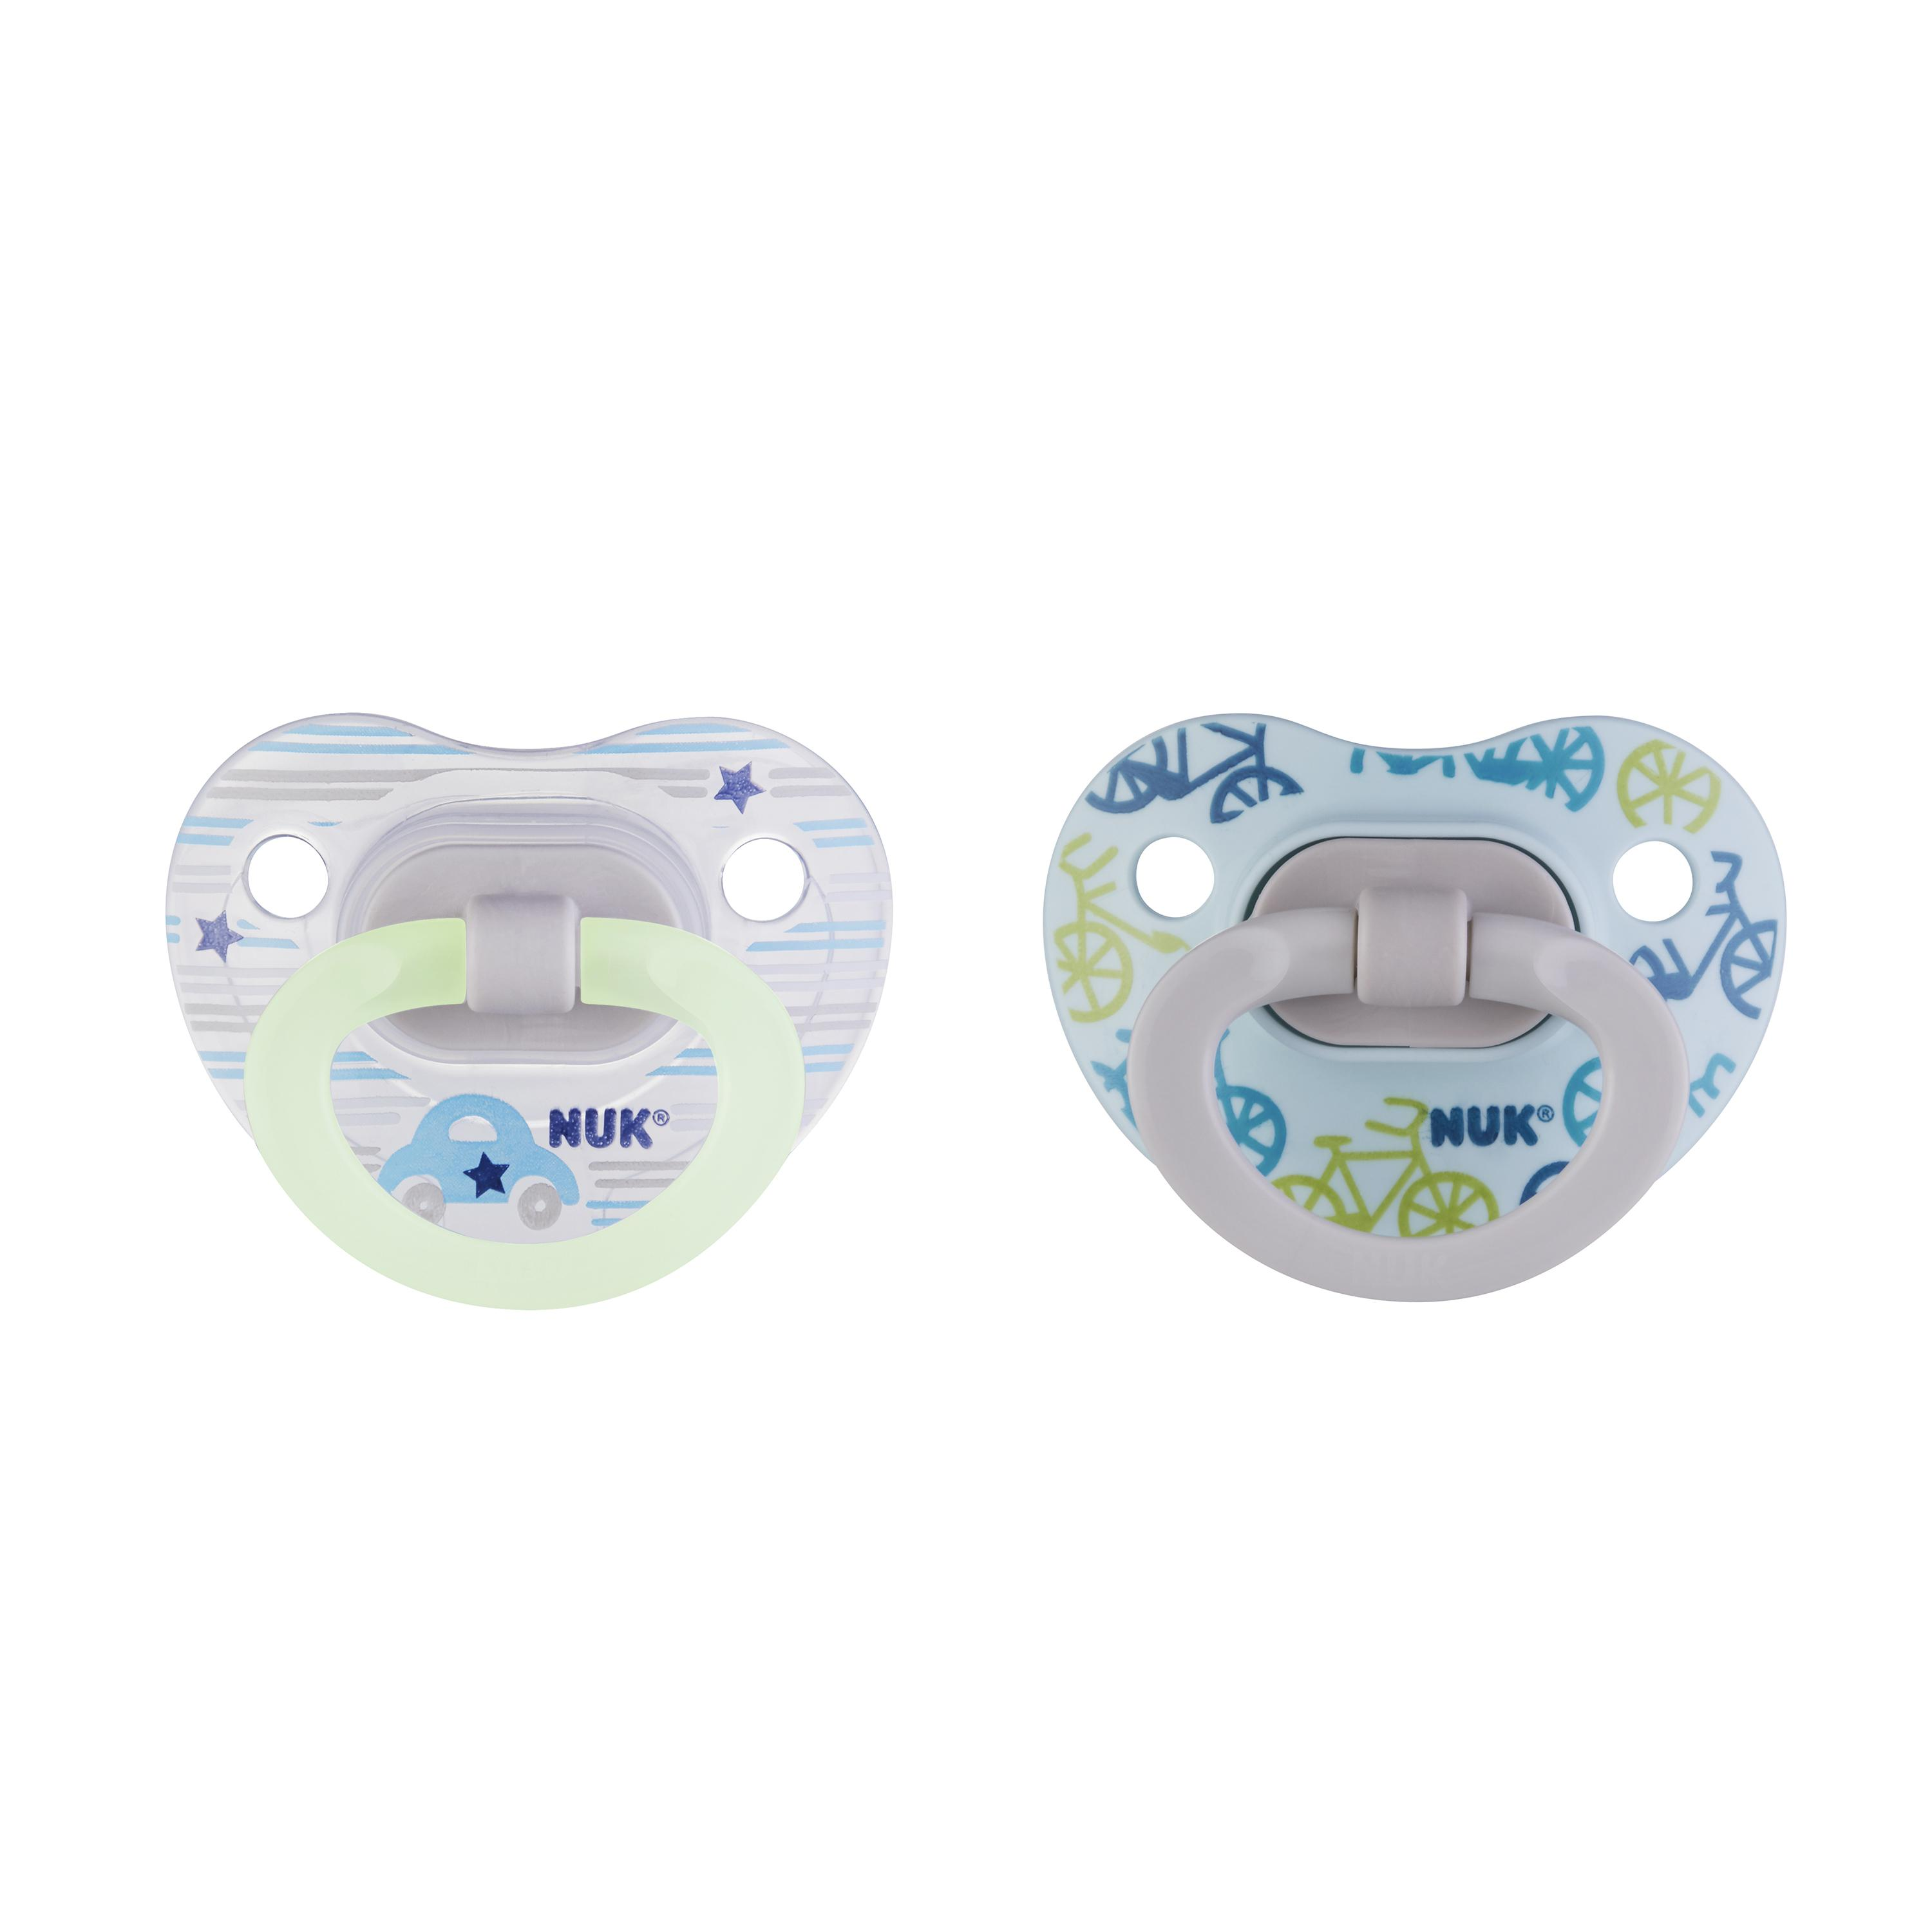 NUK® Glow-in-the-Dark Orthodontic Pacifiers, 6-18 Months, 2-Pack Product Image 5 of 6